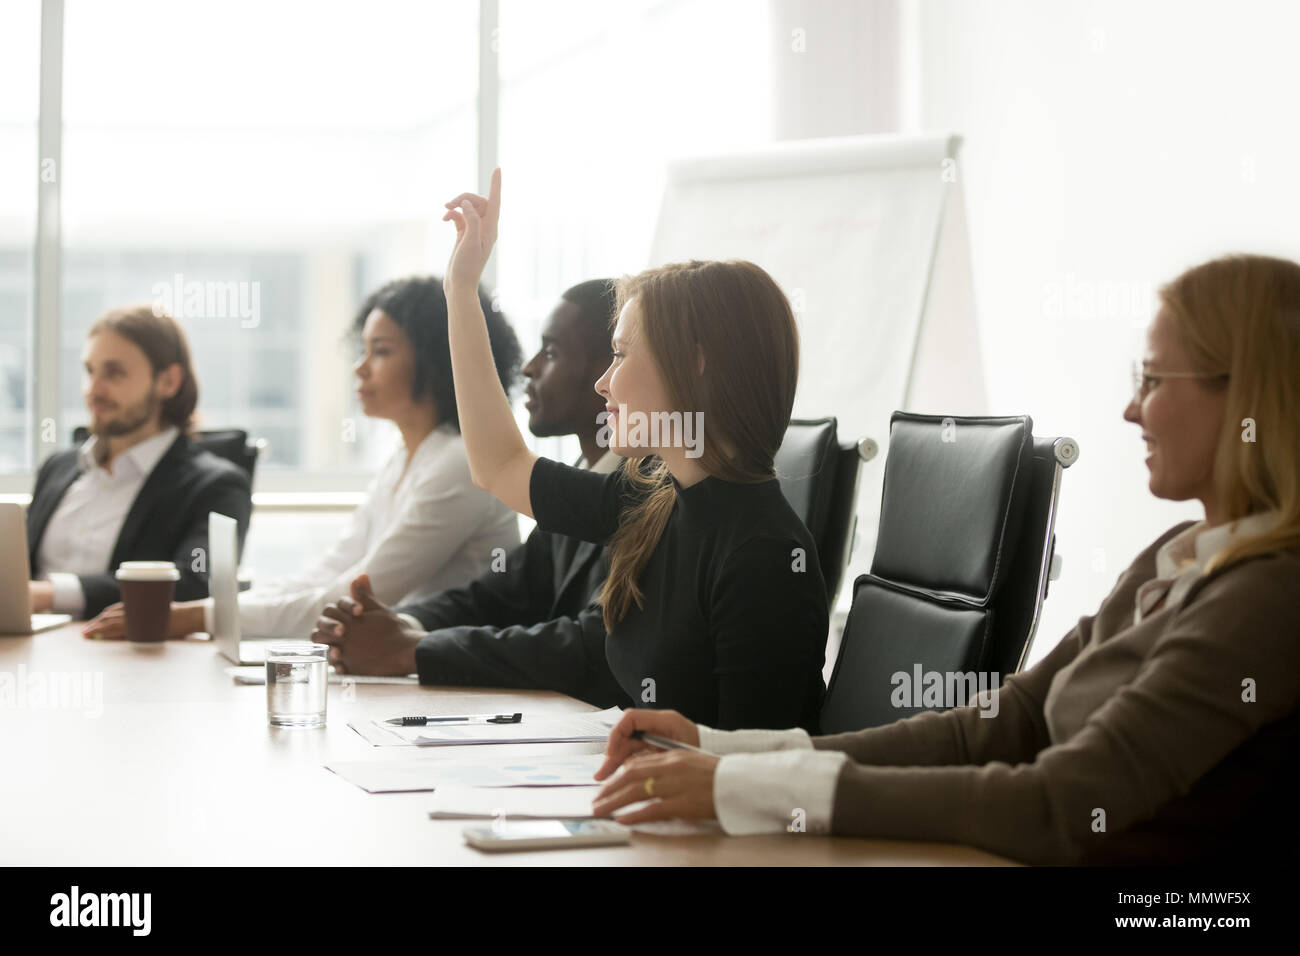 Smiling curious businesswoman raising hand at group meeting voti - Stock Image